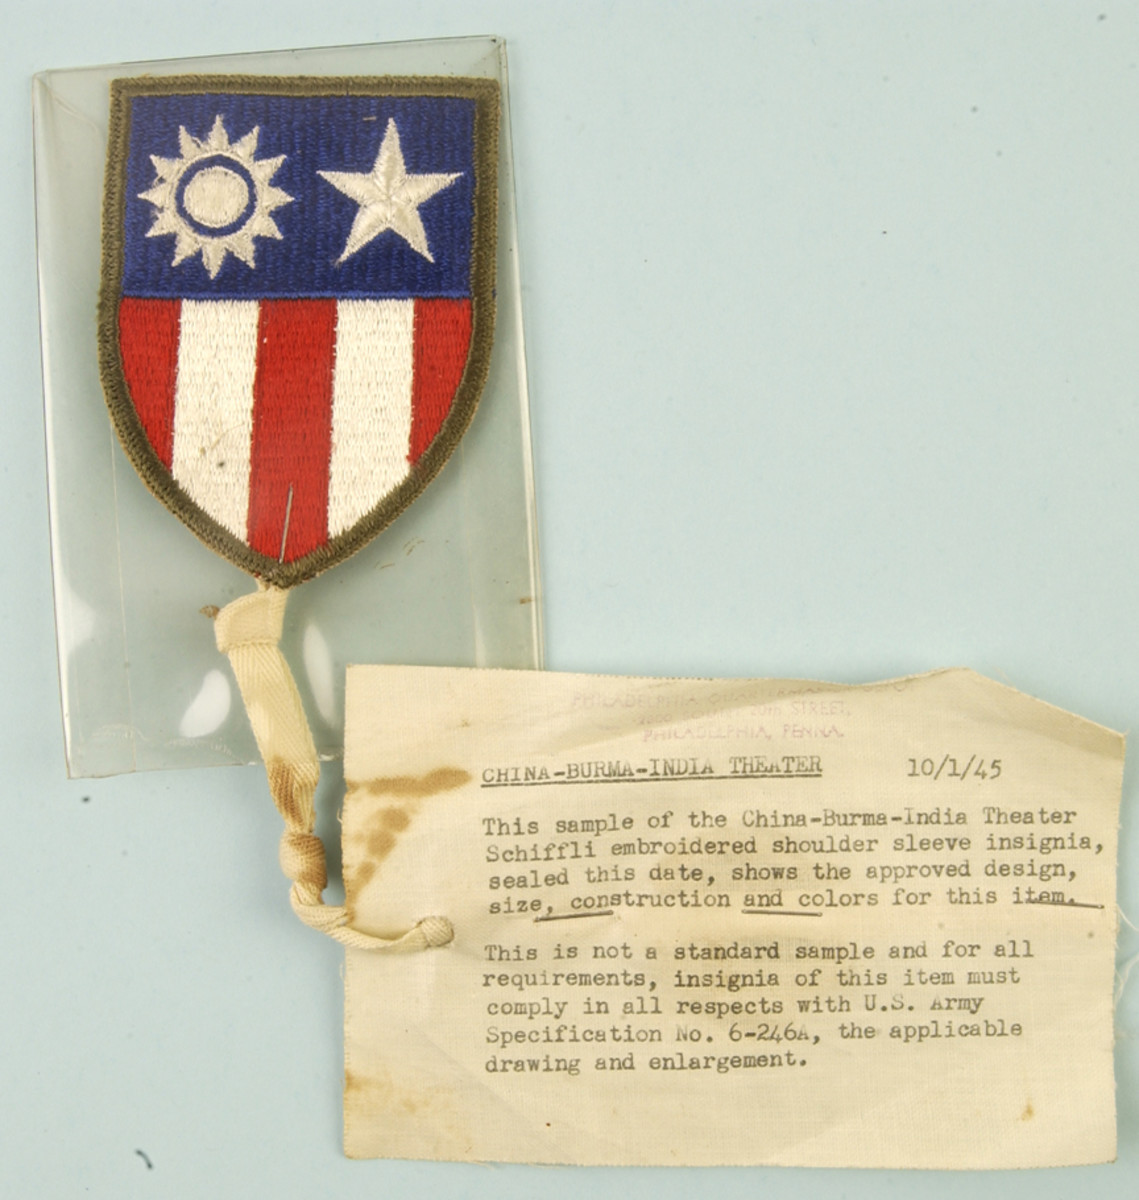 This OD-bordered China-Burma-India Theater insignia was Quartermaster-approved on January 10, 1945.